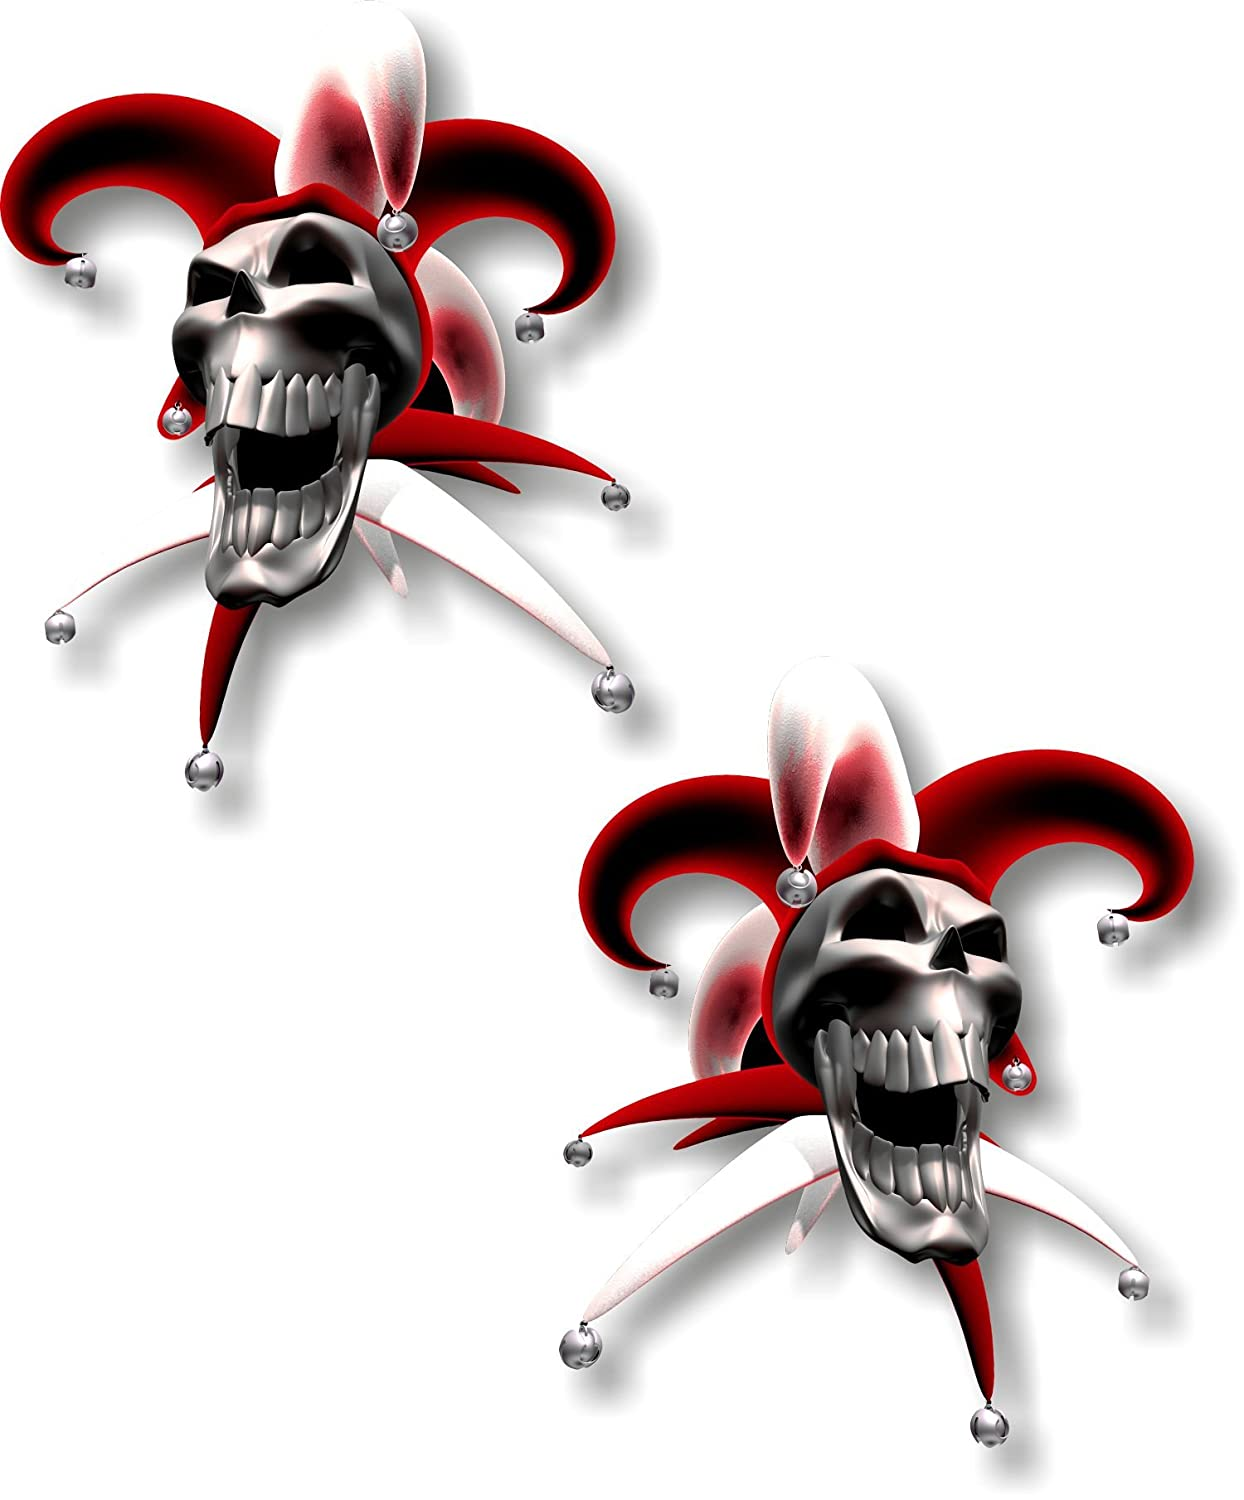 Vinyl sticker/decal Extra small 50mm jester laughing skull red - pair Graphic Effects